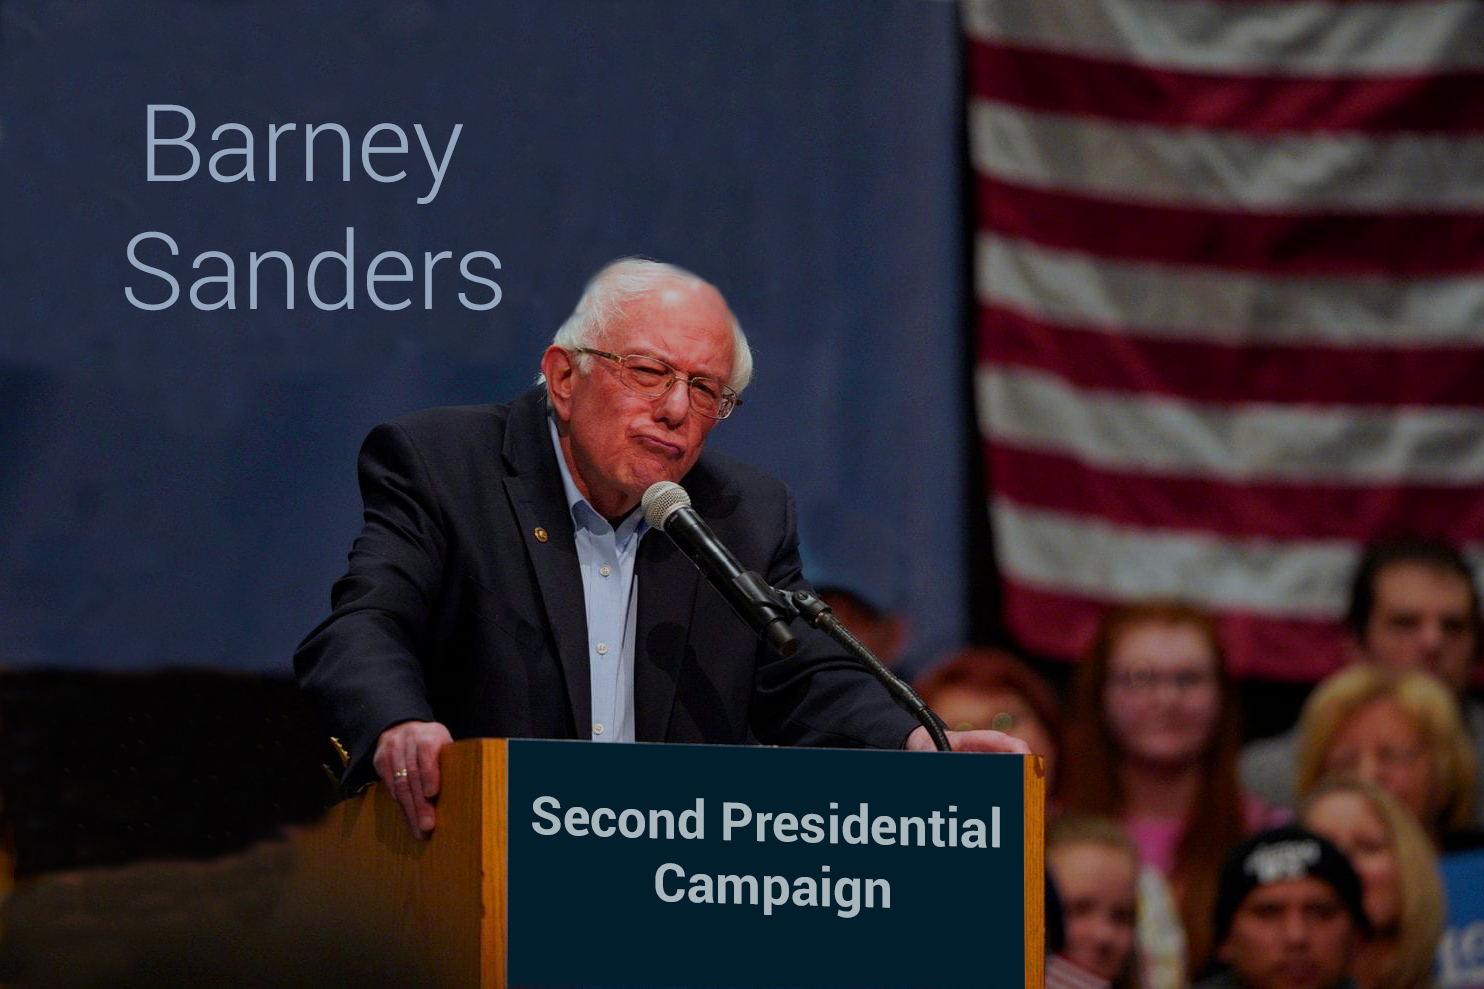 Barney Sanders Started the Second Presidential Campaign